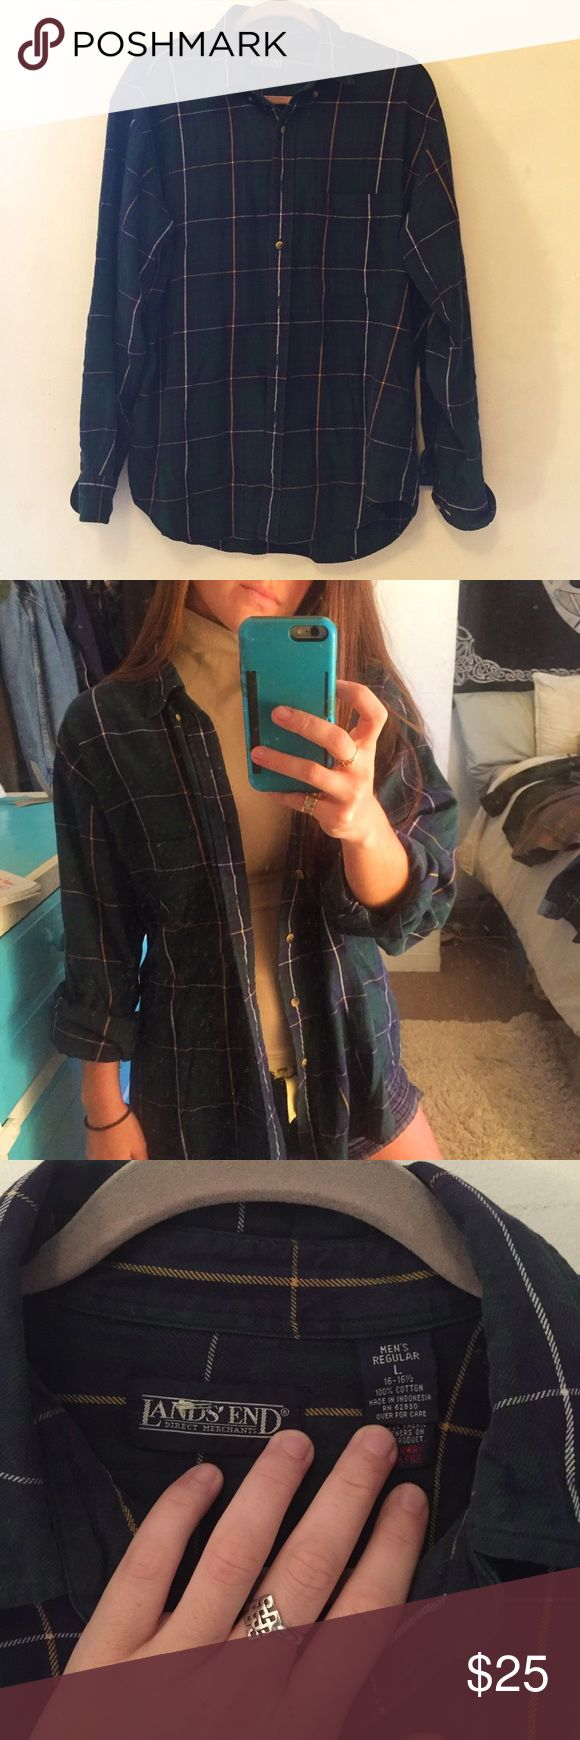 Perfect oversized flannel 🍂 Oversized flannel, perfect for wearing with leggings or tying around the waist. Men's size LARGE, I'm a S and it's a nice baggy fit. One of my favorites but I need to cut down on my collections of 15+ flannels! Not American apparel, tagged for exposure American Apparel Tops Button Down Shirts